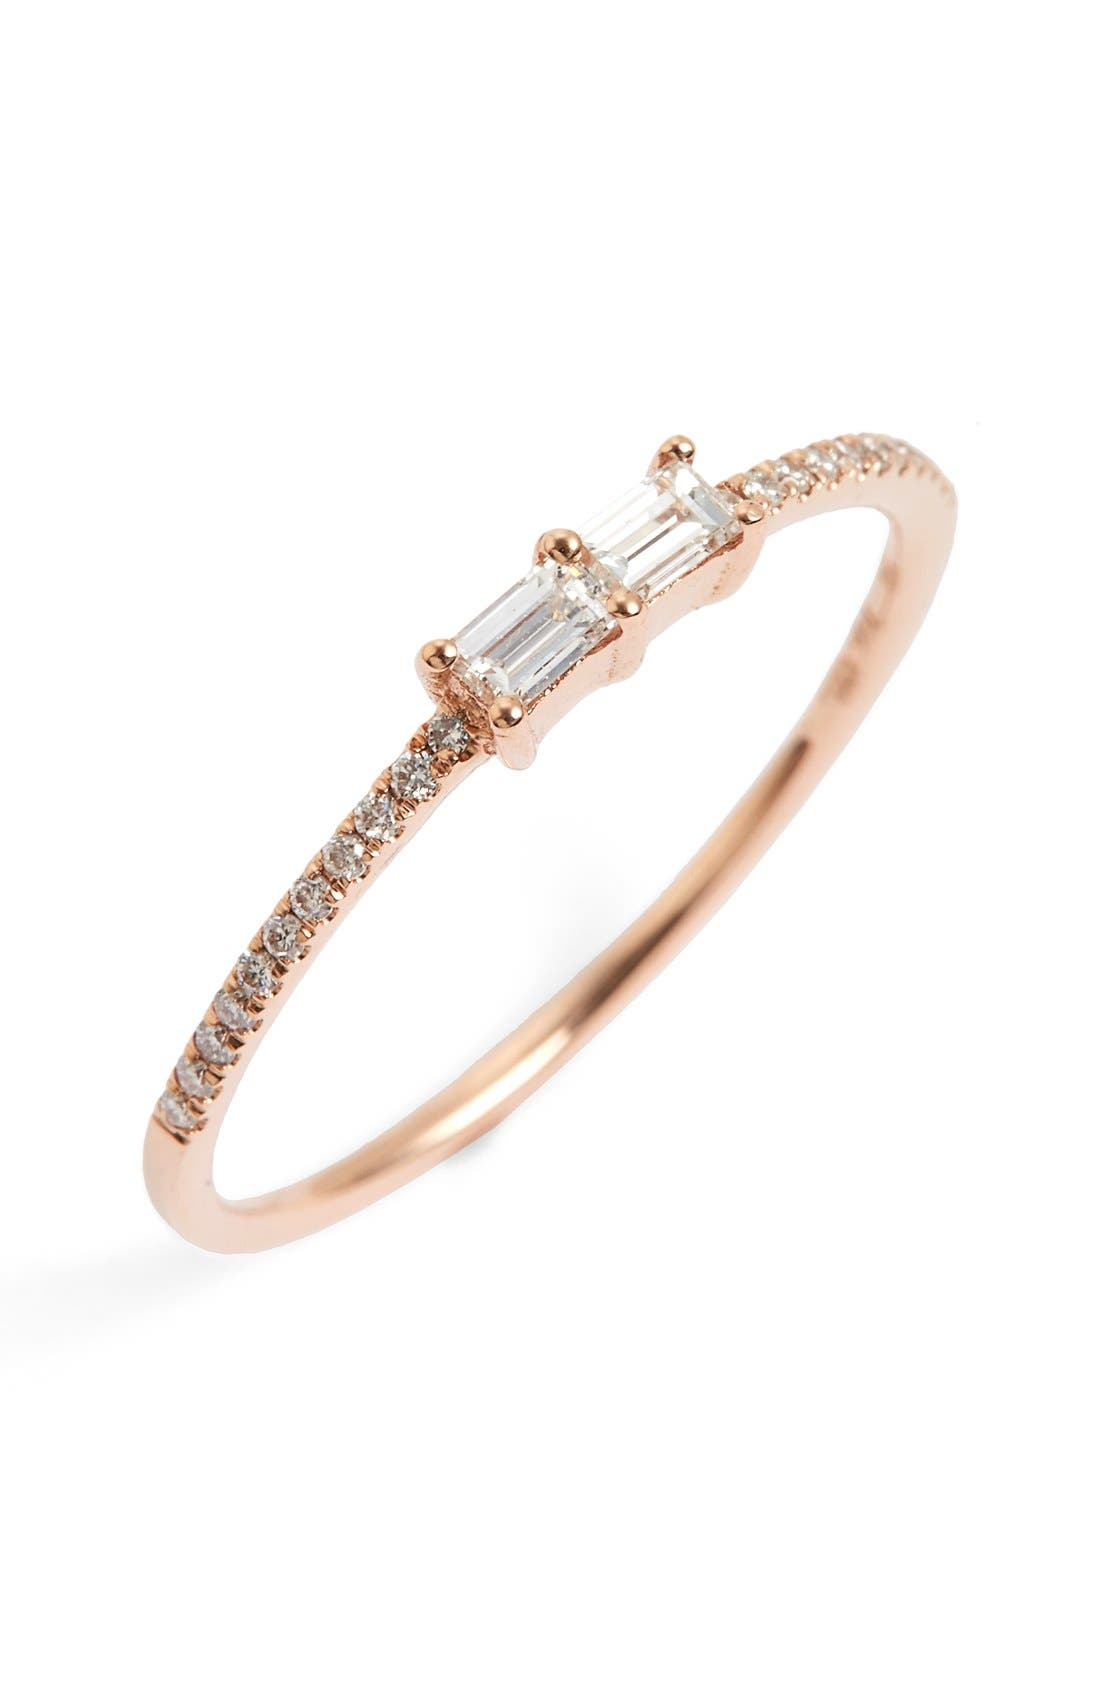 Double Baguette Diamond Ring,                             Main thumbnail 1, color,                             Rose Gold